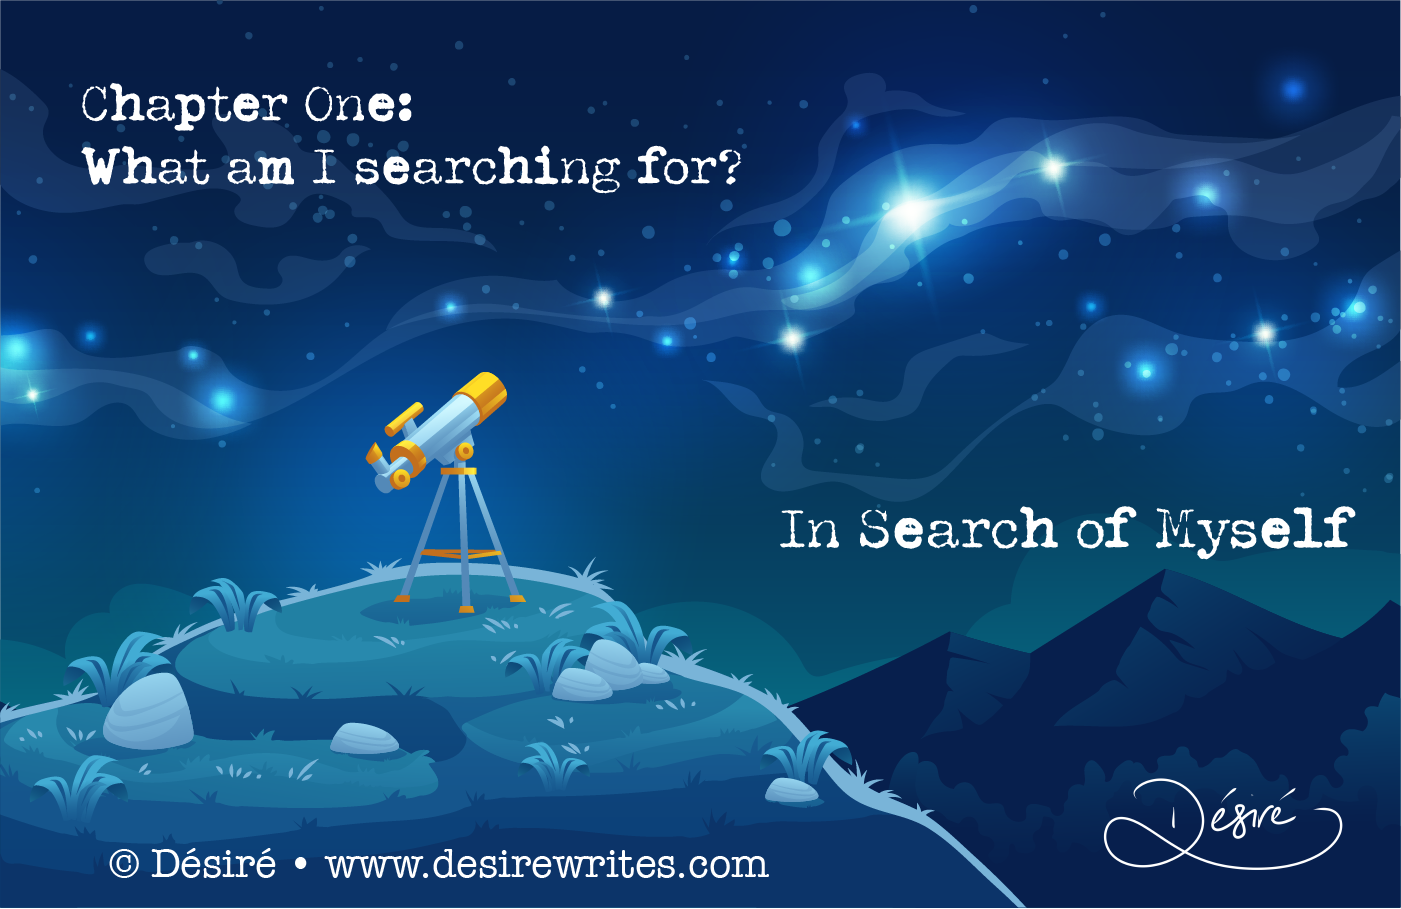 Chapter One: What am I searching for?